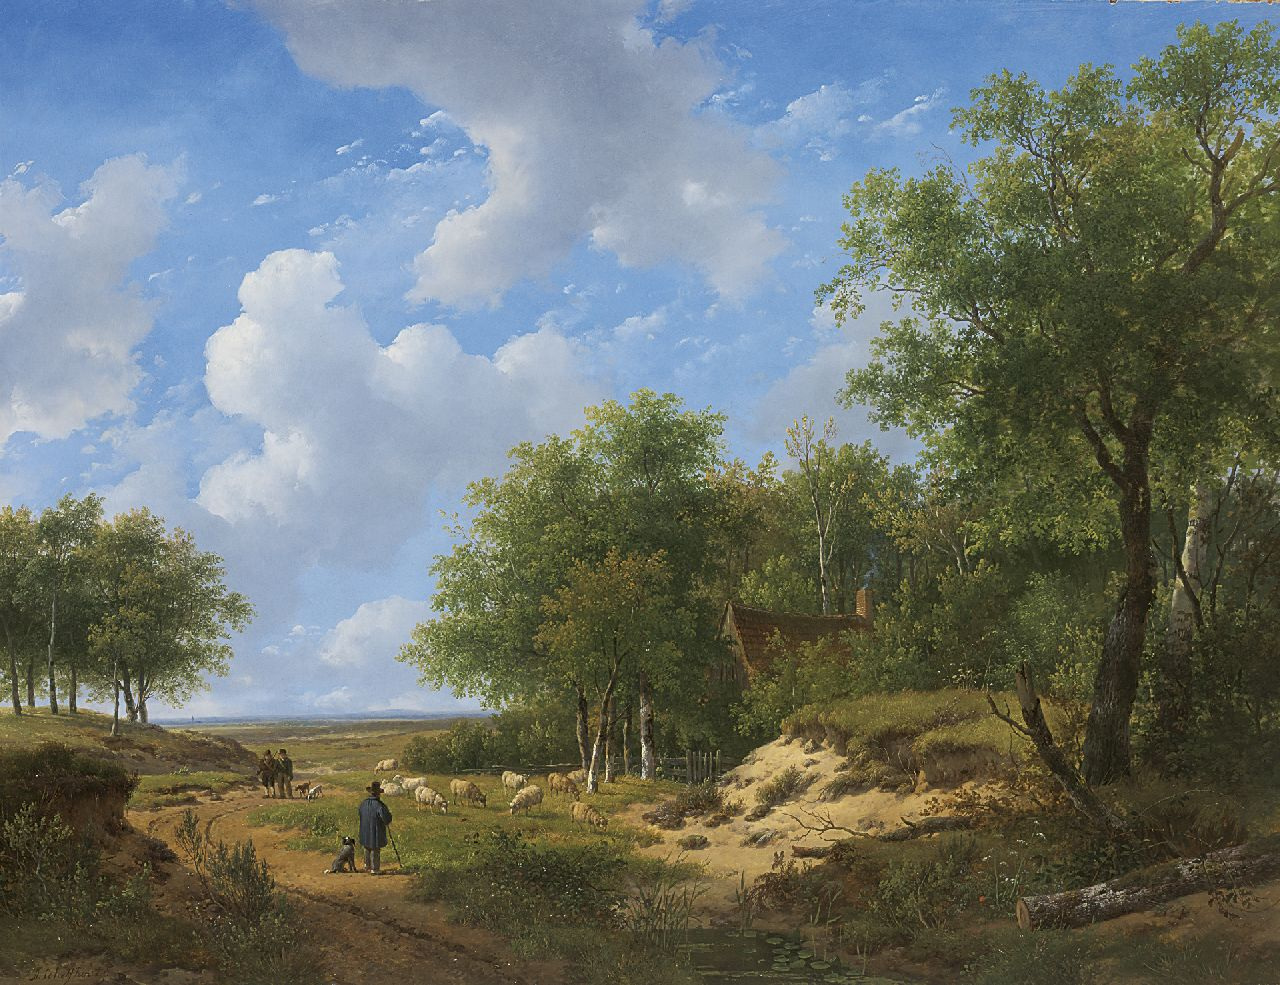 Schelfhout A.  | Andreas Schelfhout, Heathland with a shepherd and his flock, oil on panel 53.1 x 68.9 cm, signed l.l.